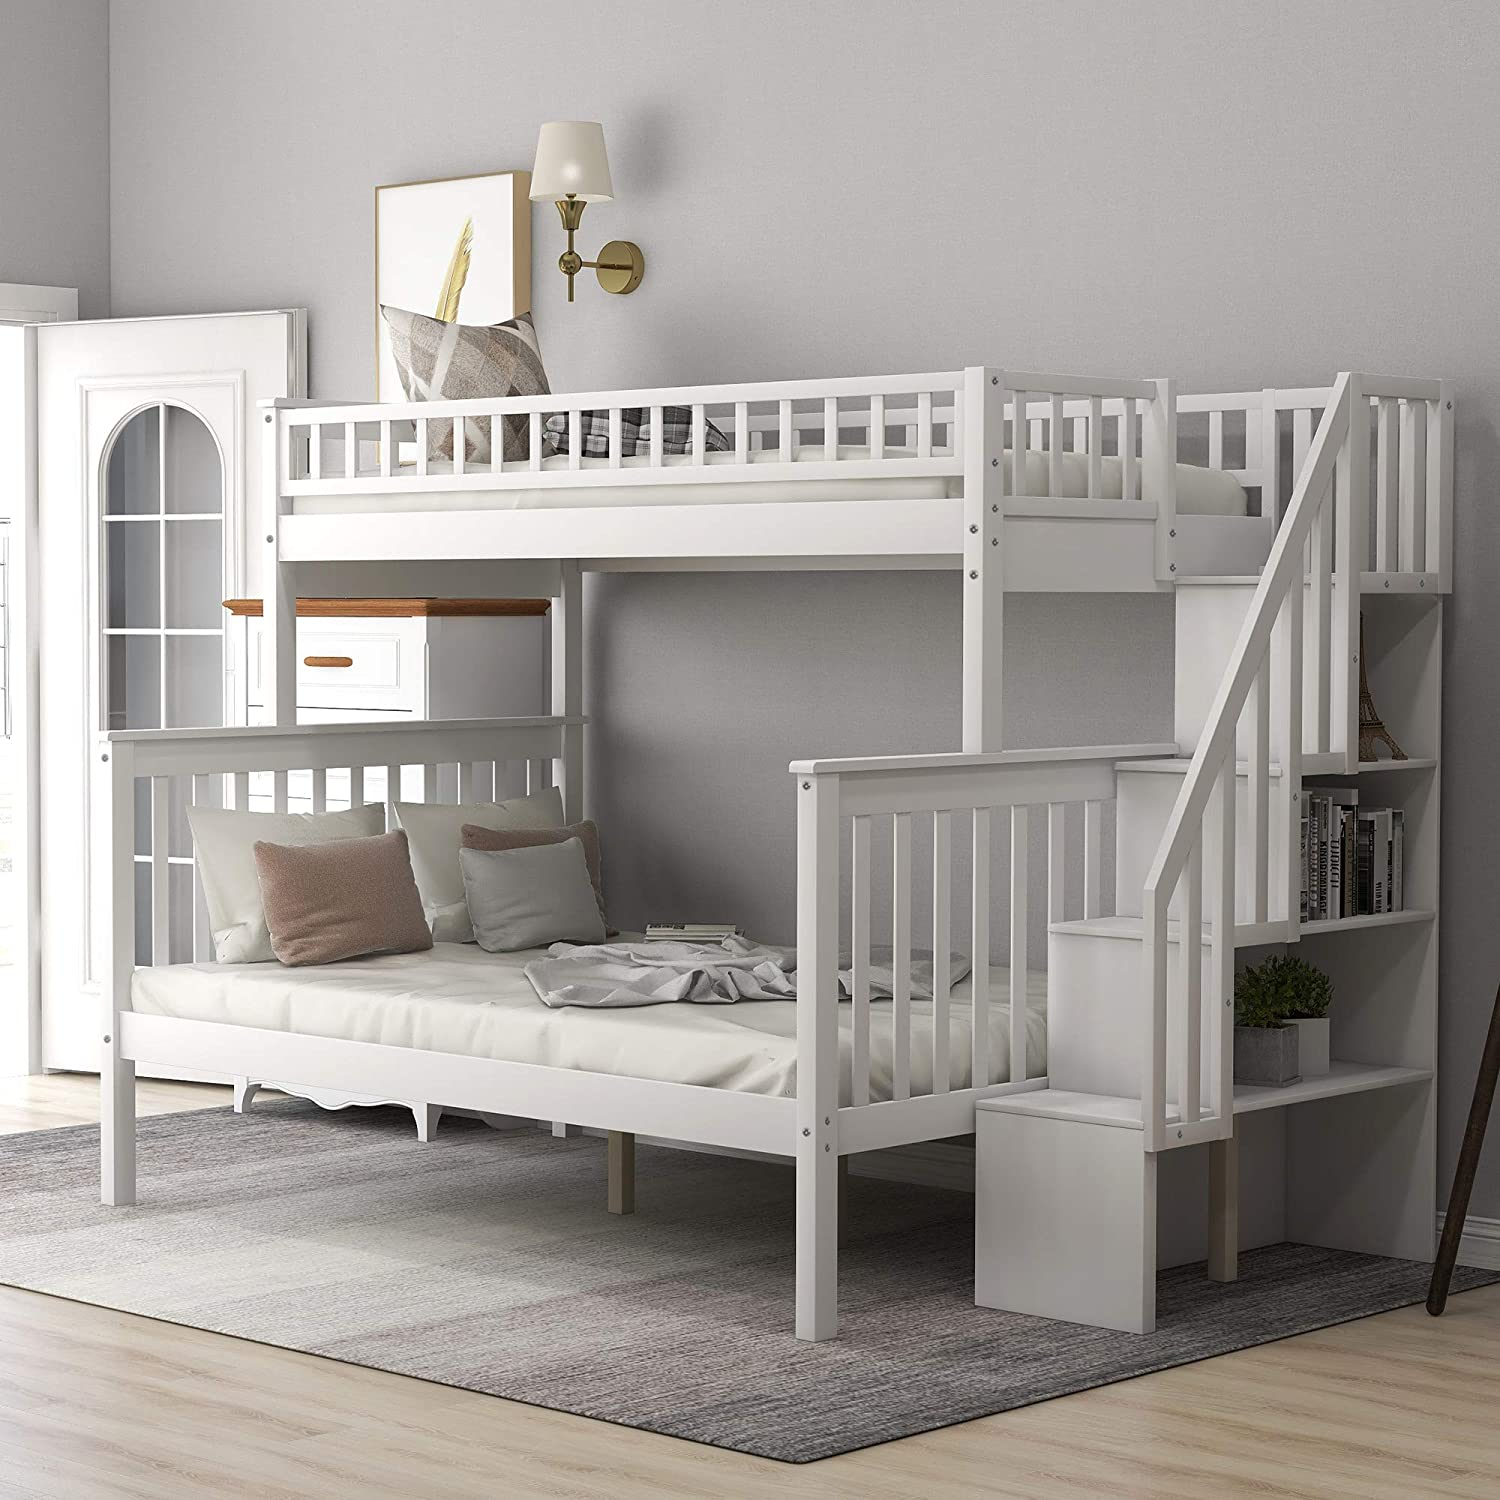 Store Twin Over Full Bunk Bed Frame for SEAL limited product Style Kids Wood Mission